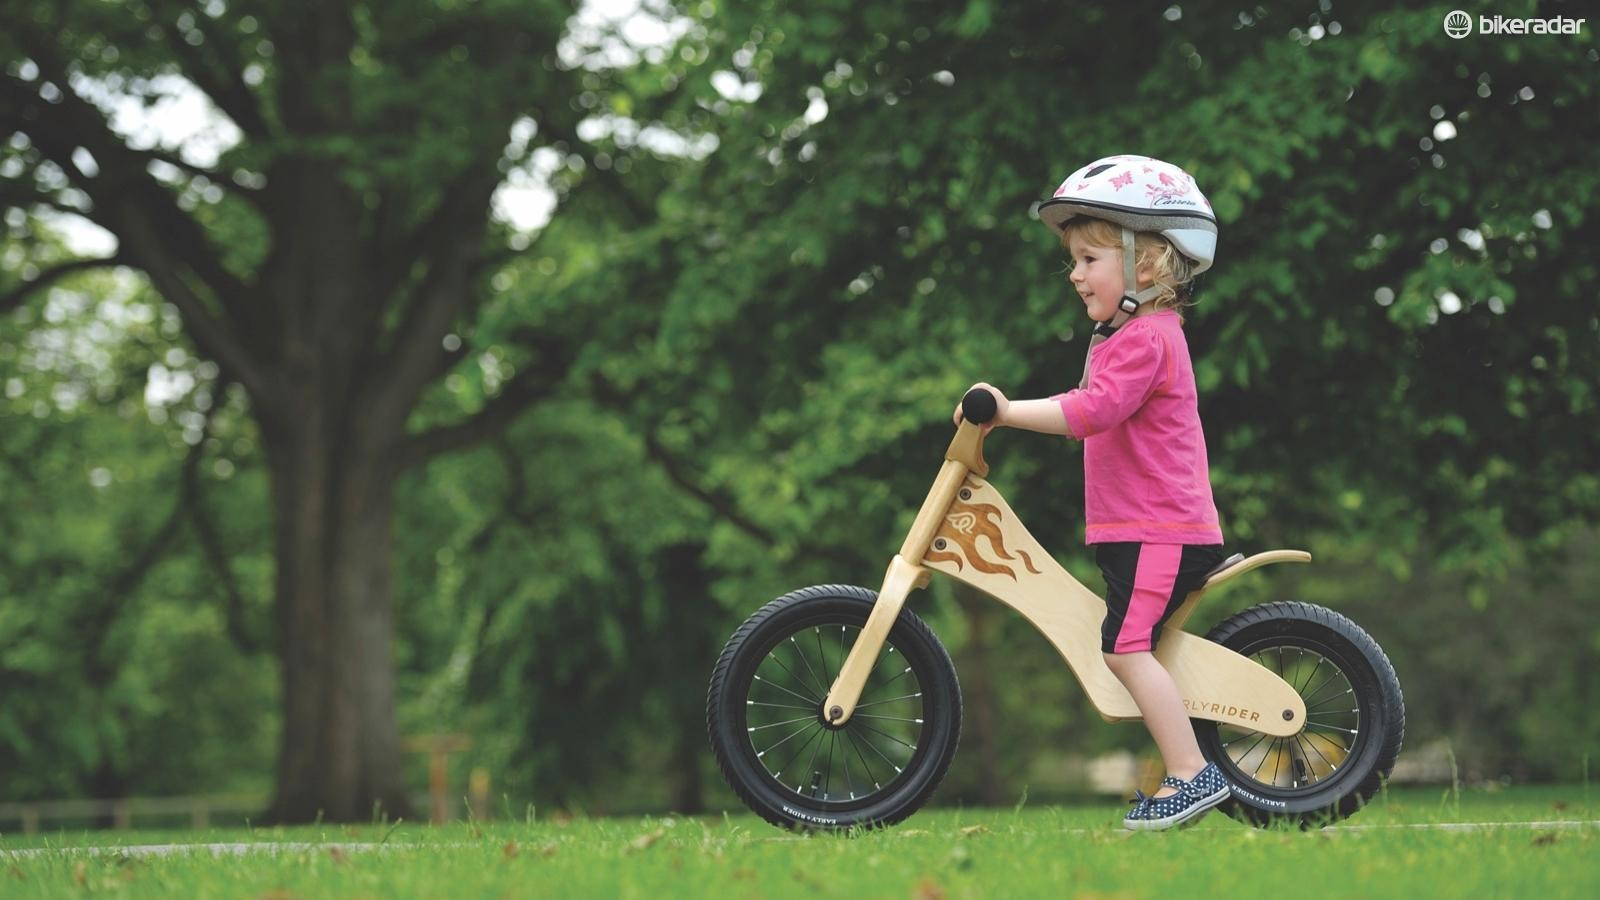 Balance bikes are a great way for children to learn to cycle